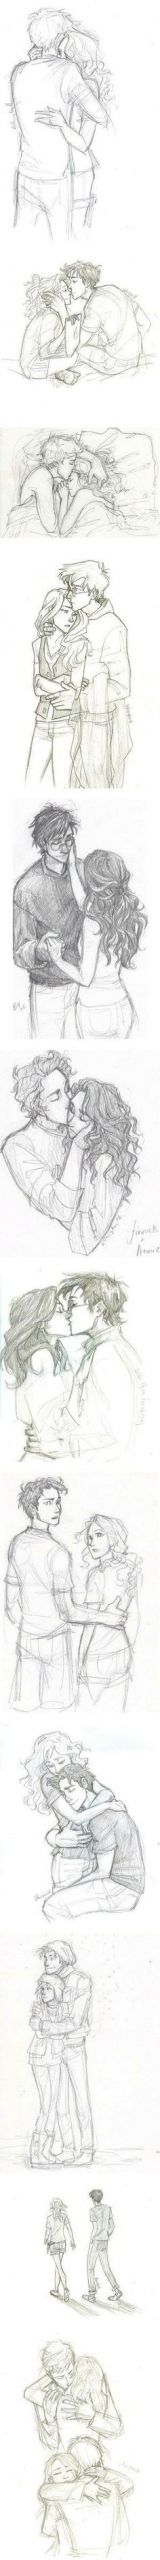 22eeb8ac cb7aa8a ae4f love drawings couple drawings of couples